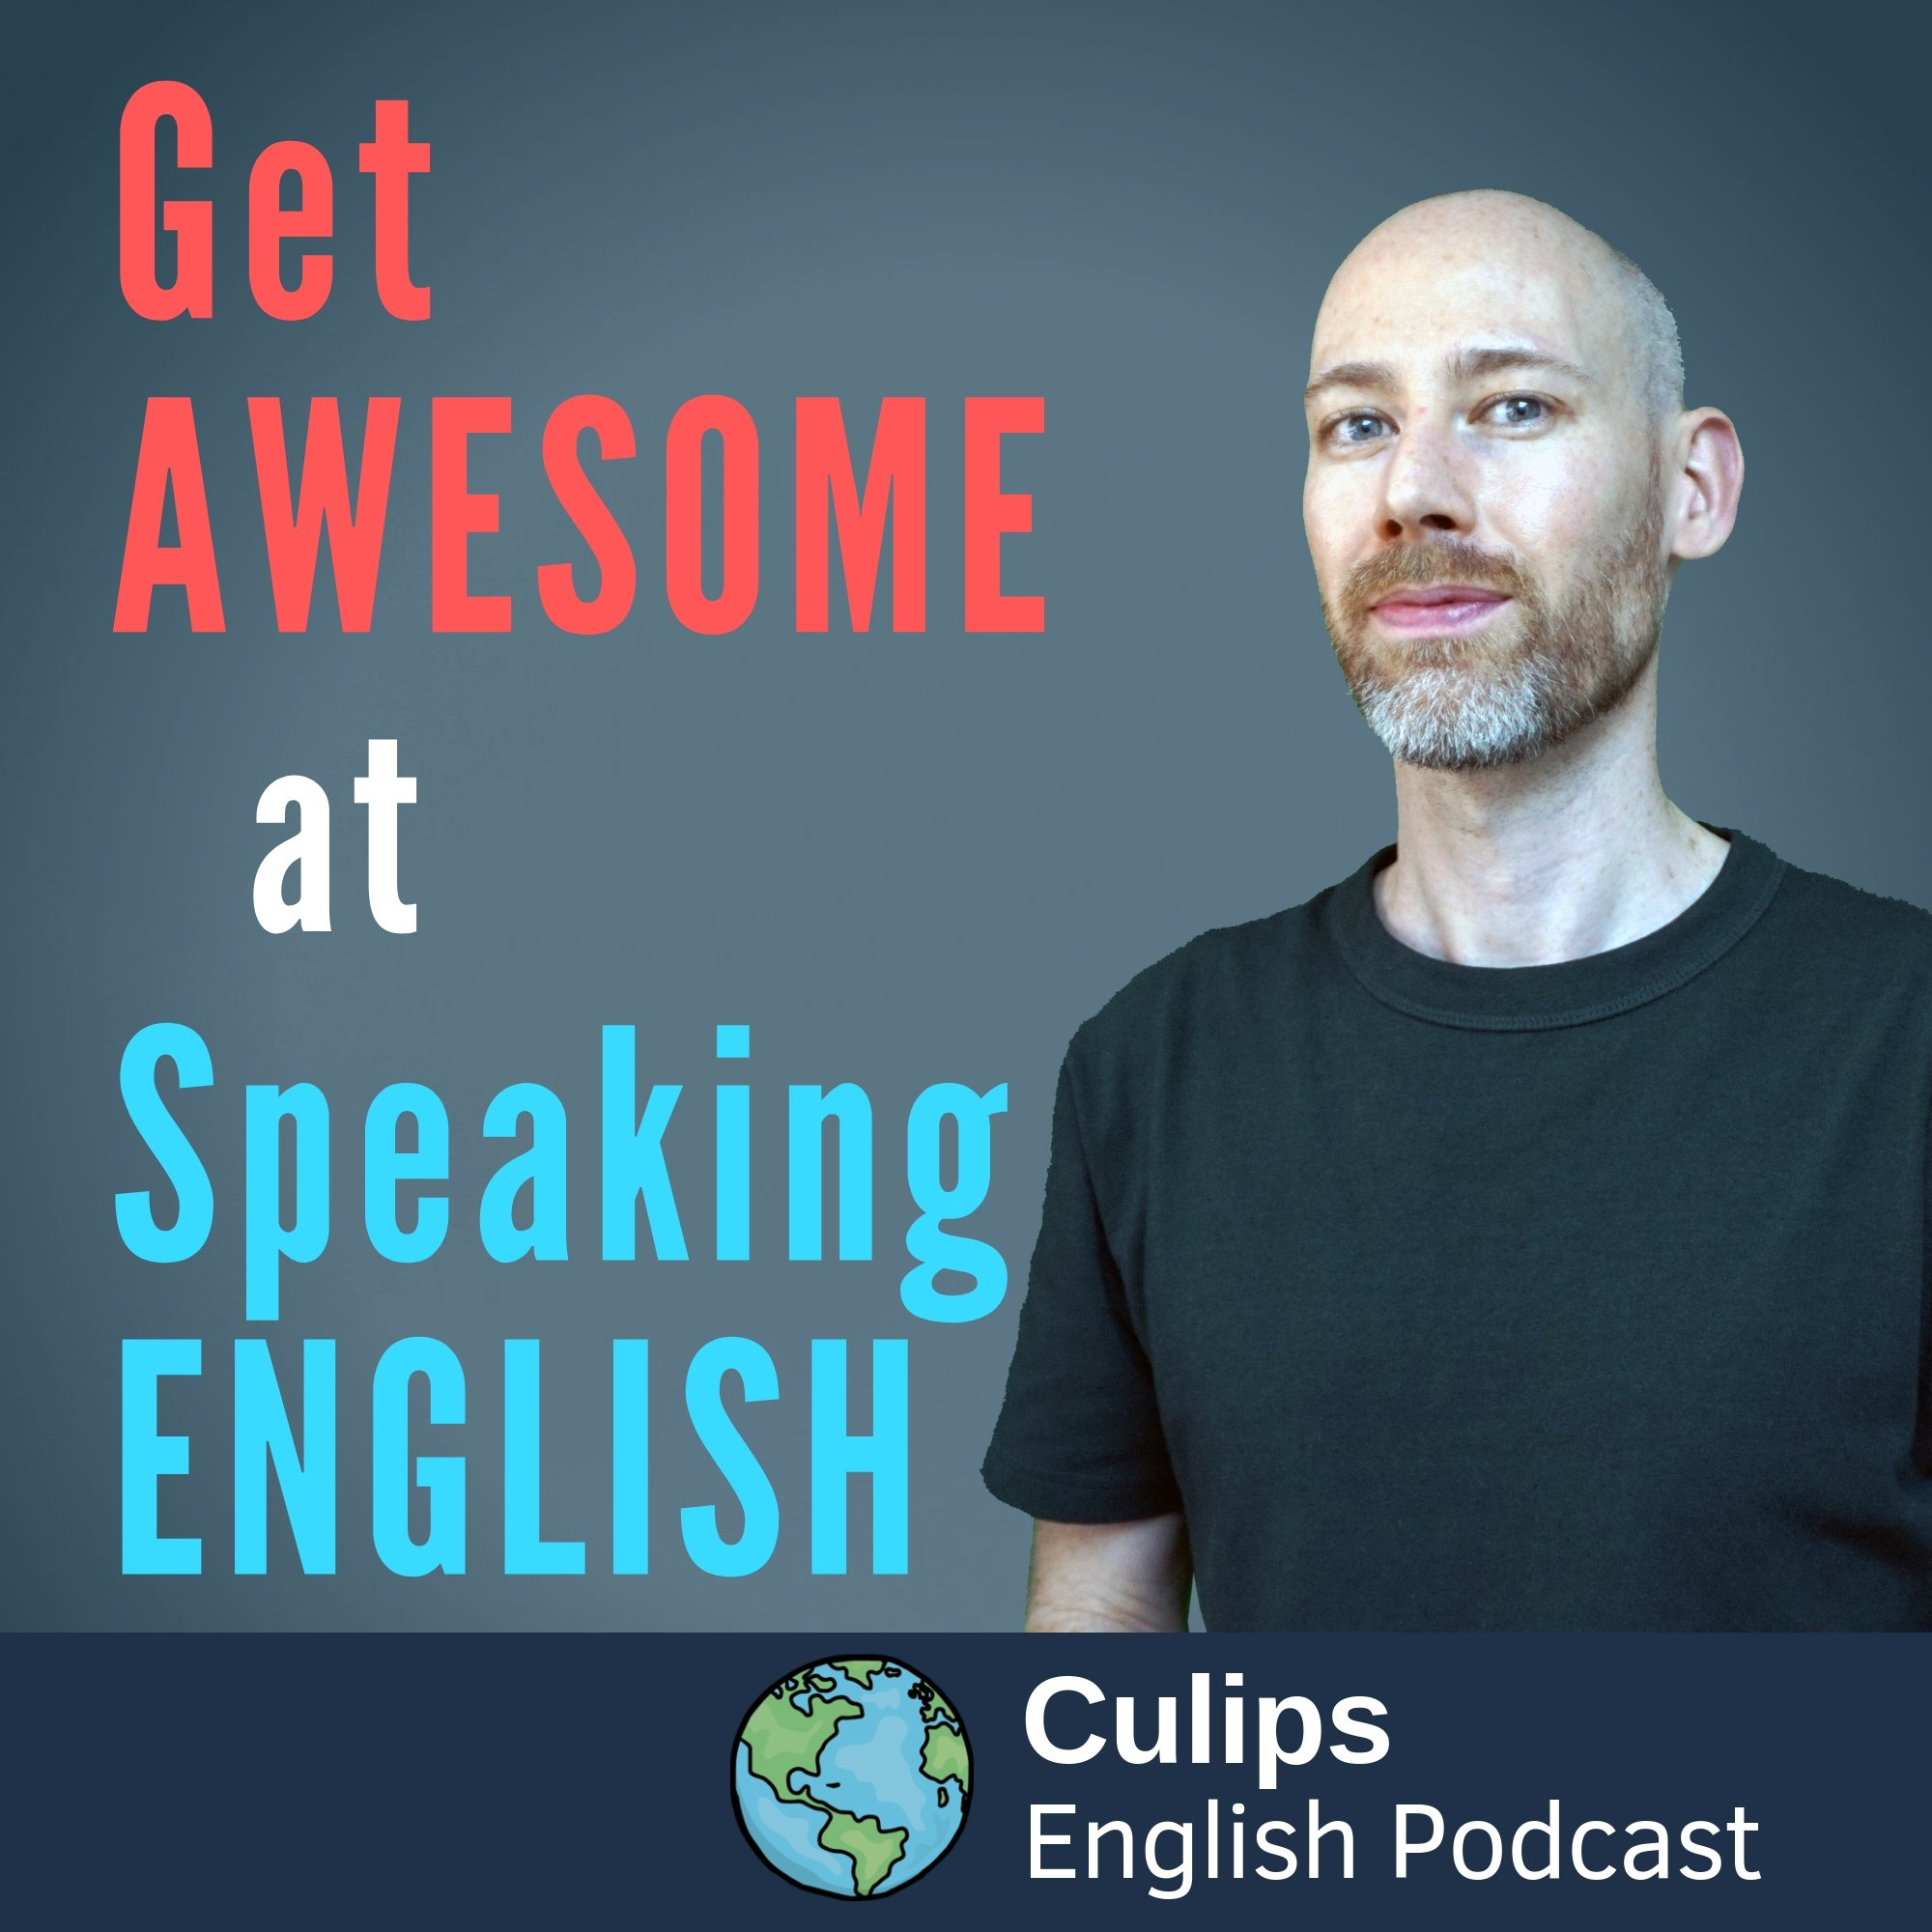 Suzanne's Quick Tips Episode #2: Articulate to make your English great